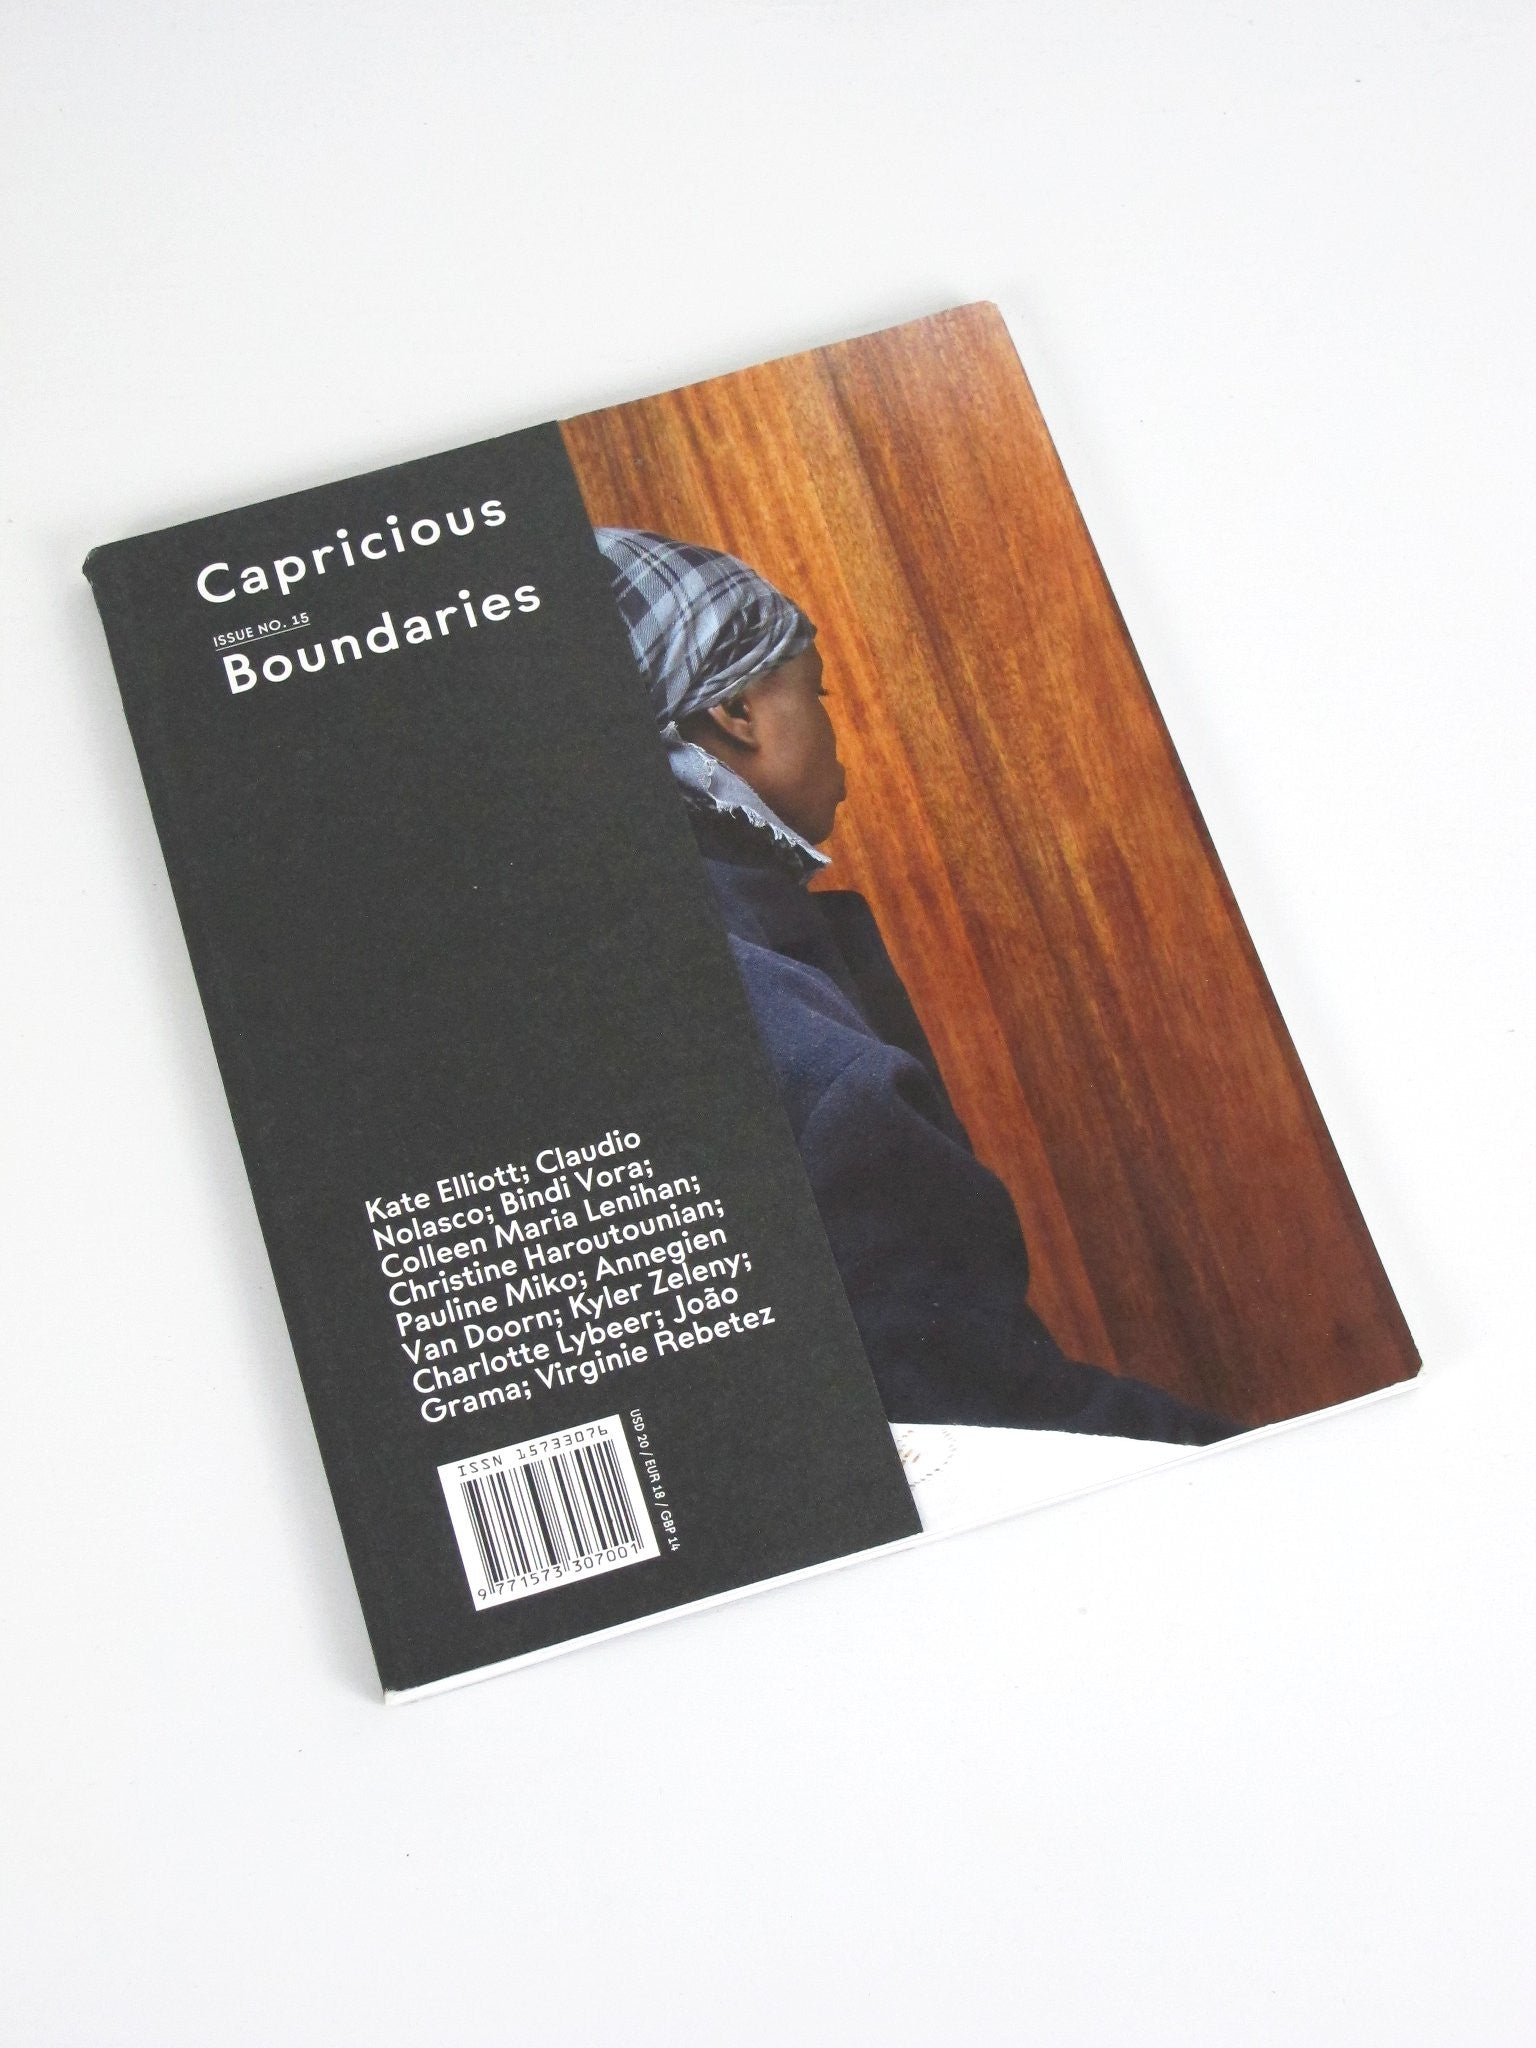 Capricious Issue No. 15, Boundaries